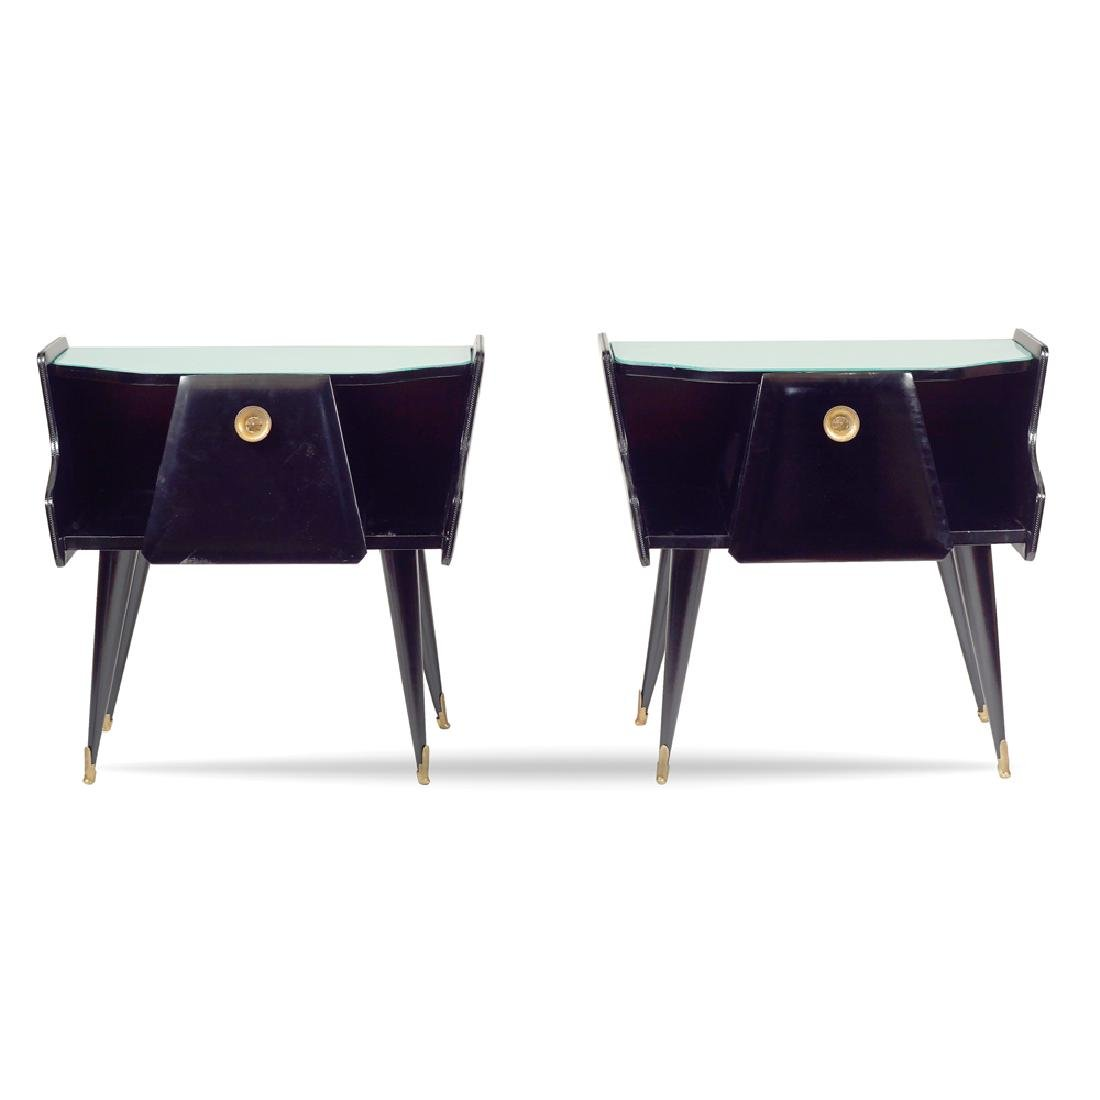 A pair of ebonized wood bedside tables Italy mid 20th